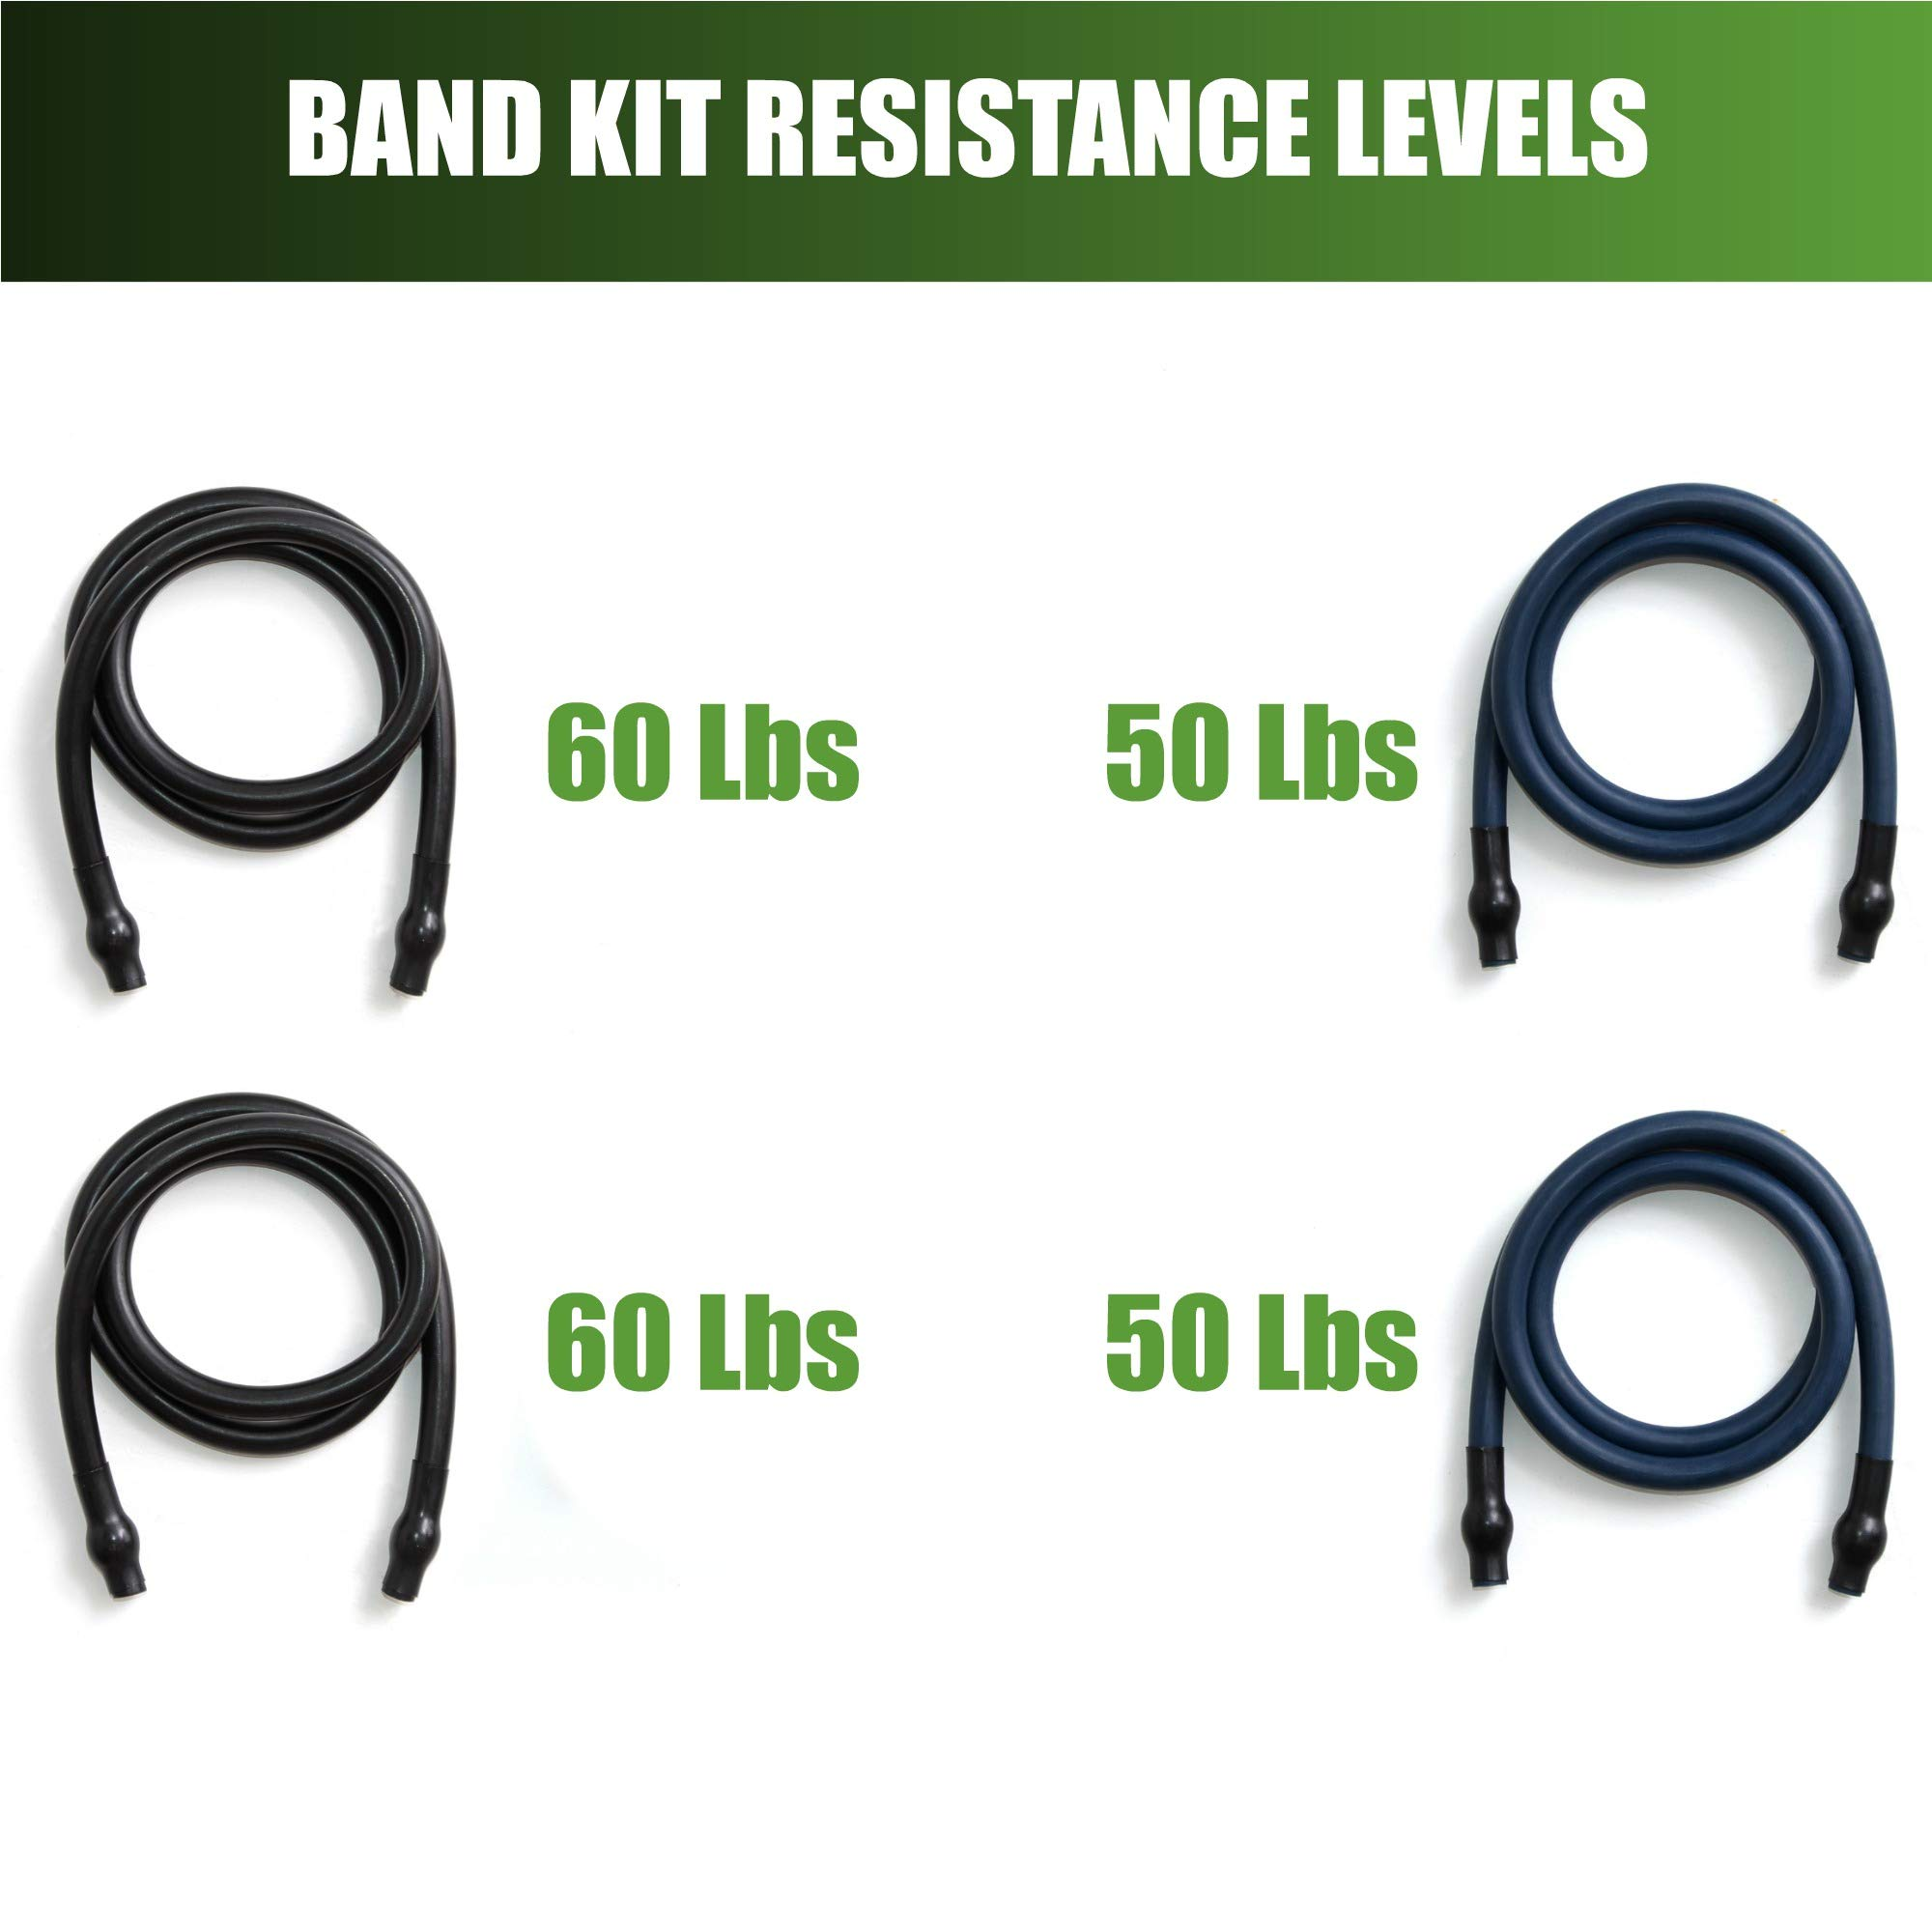 Gorilla Bow Portable Home Gym Resistance Band System - Heavy Set | Weightlifting & HIIT Interval Training Kit | Full Body Workout Equipment (Heavy Set - Black) by Gorilla Fitness (Image #7)